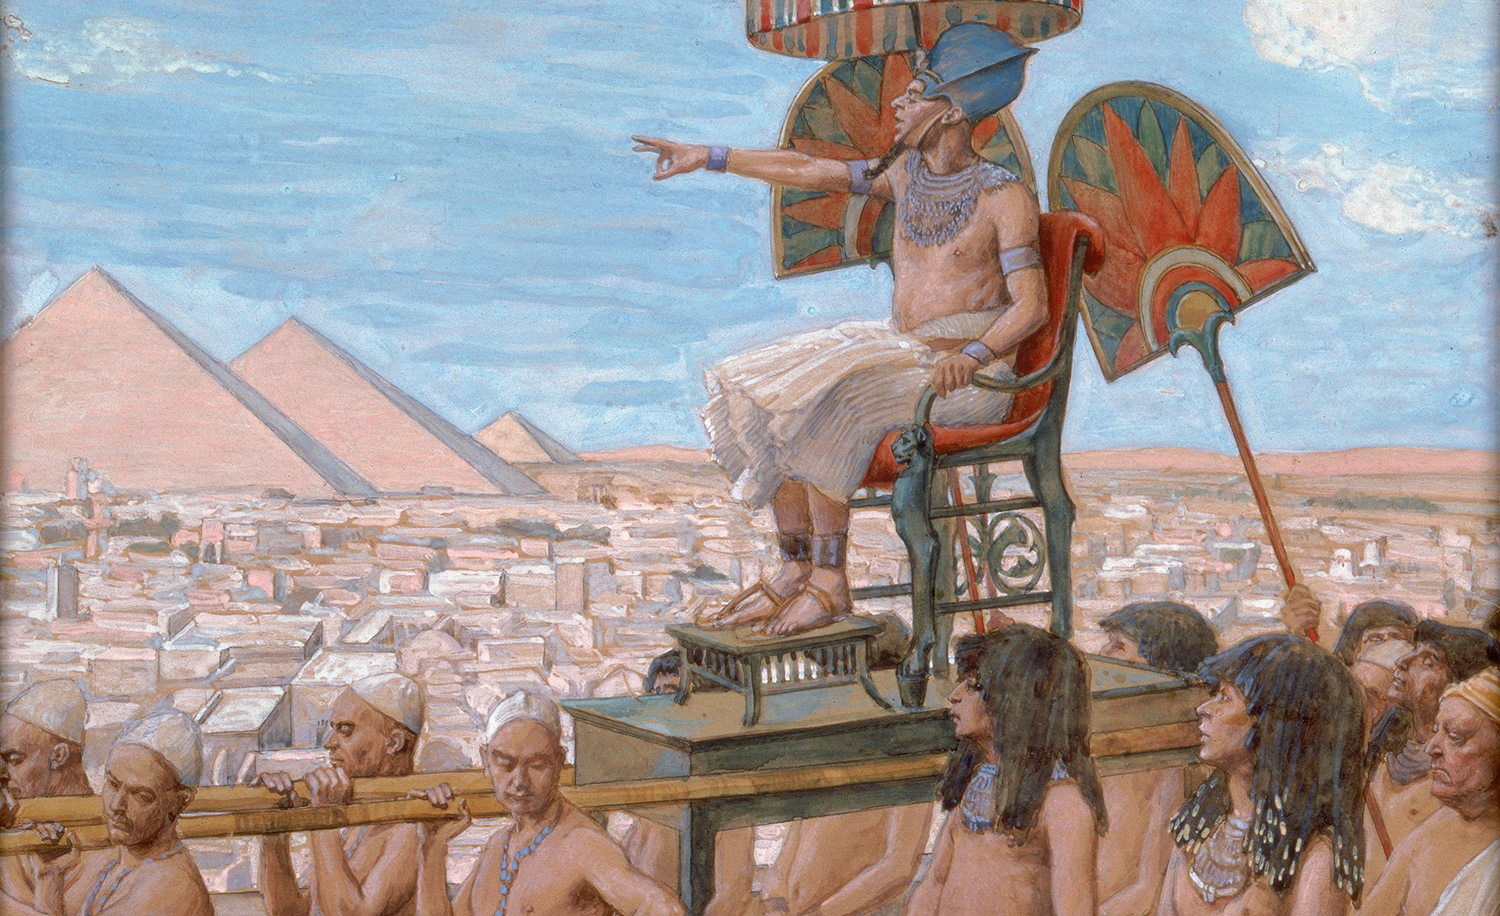 From Pharaoh Notes the Importance of the Jewish People by James Jacques Joseph Tissot, c. 1896-1902. Jewish Museum.